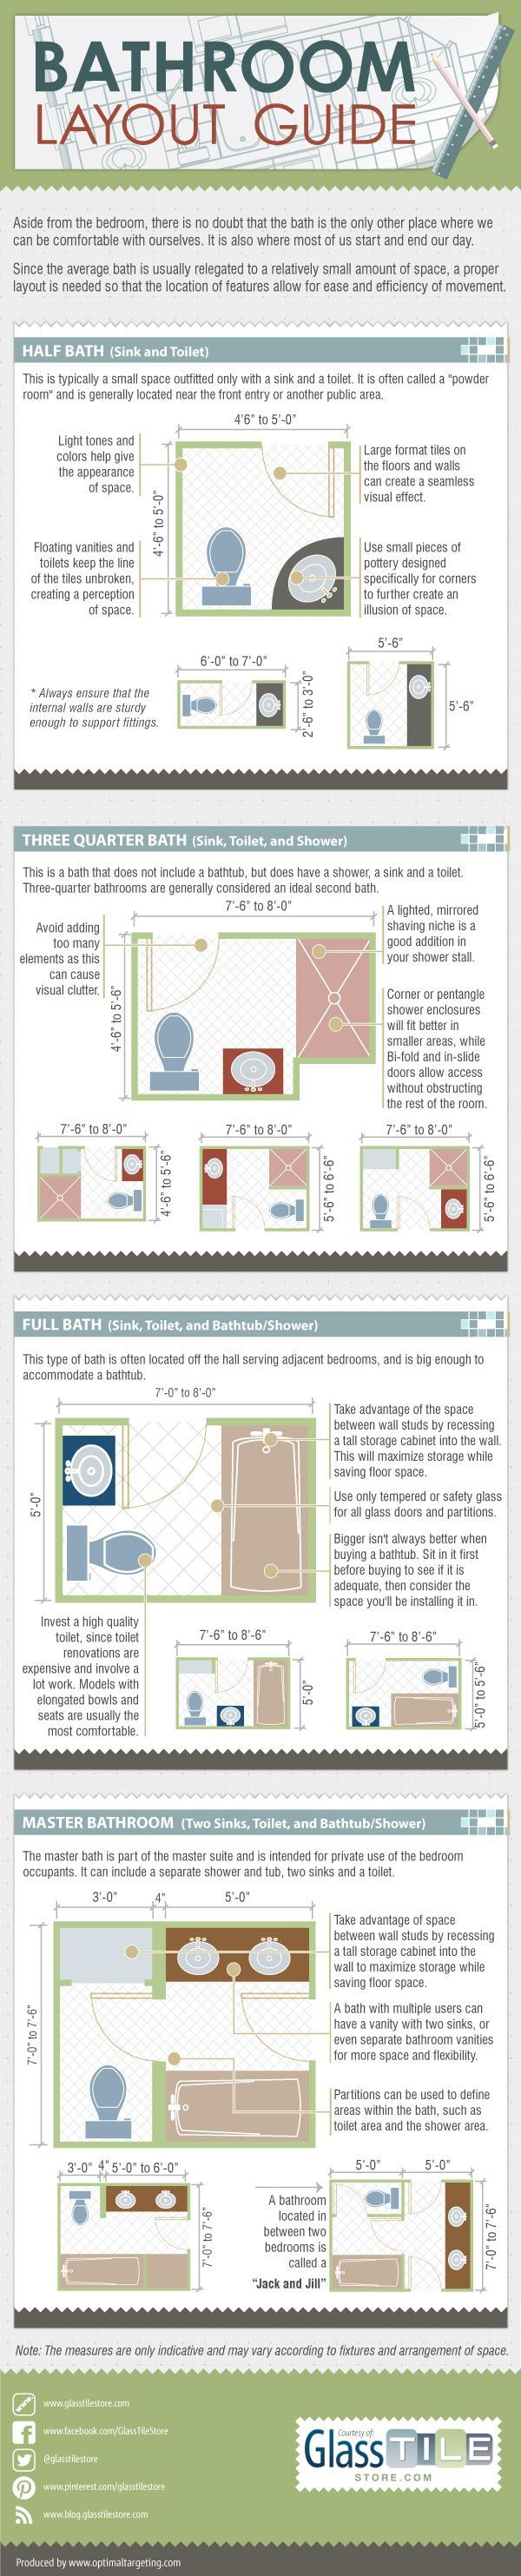 Small Bathroom Design Guide best 25+ bathroom layout ideas only on pinterest | master suite